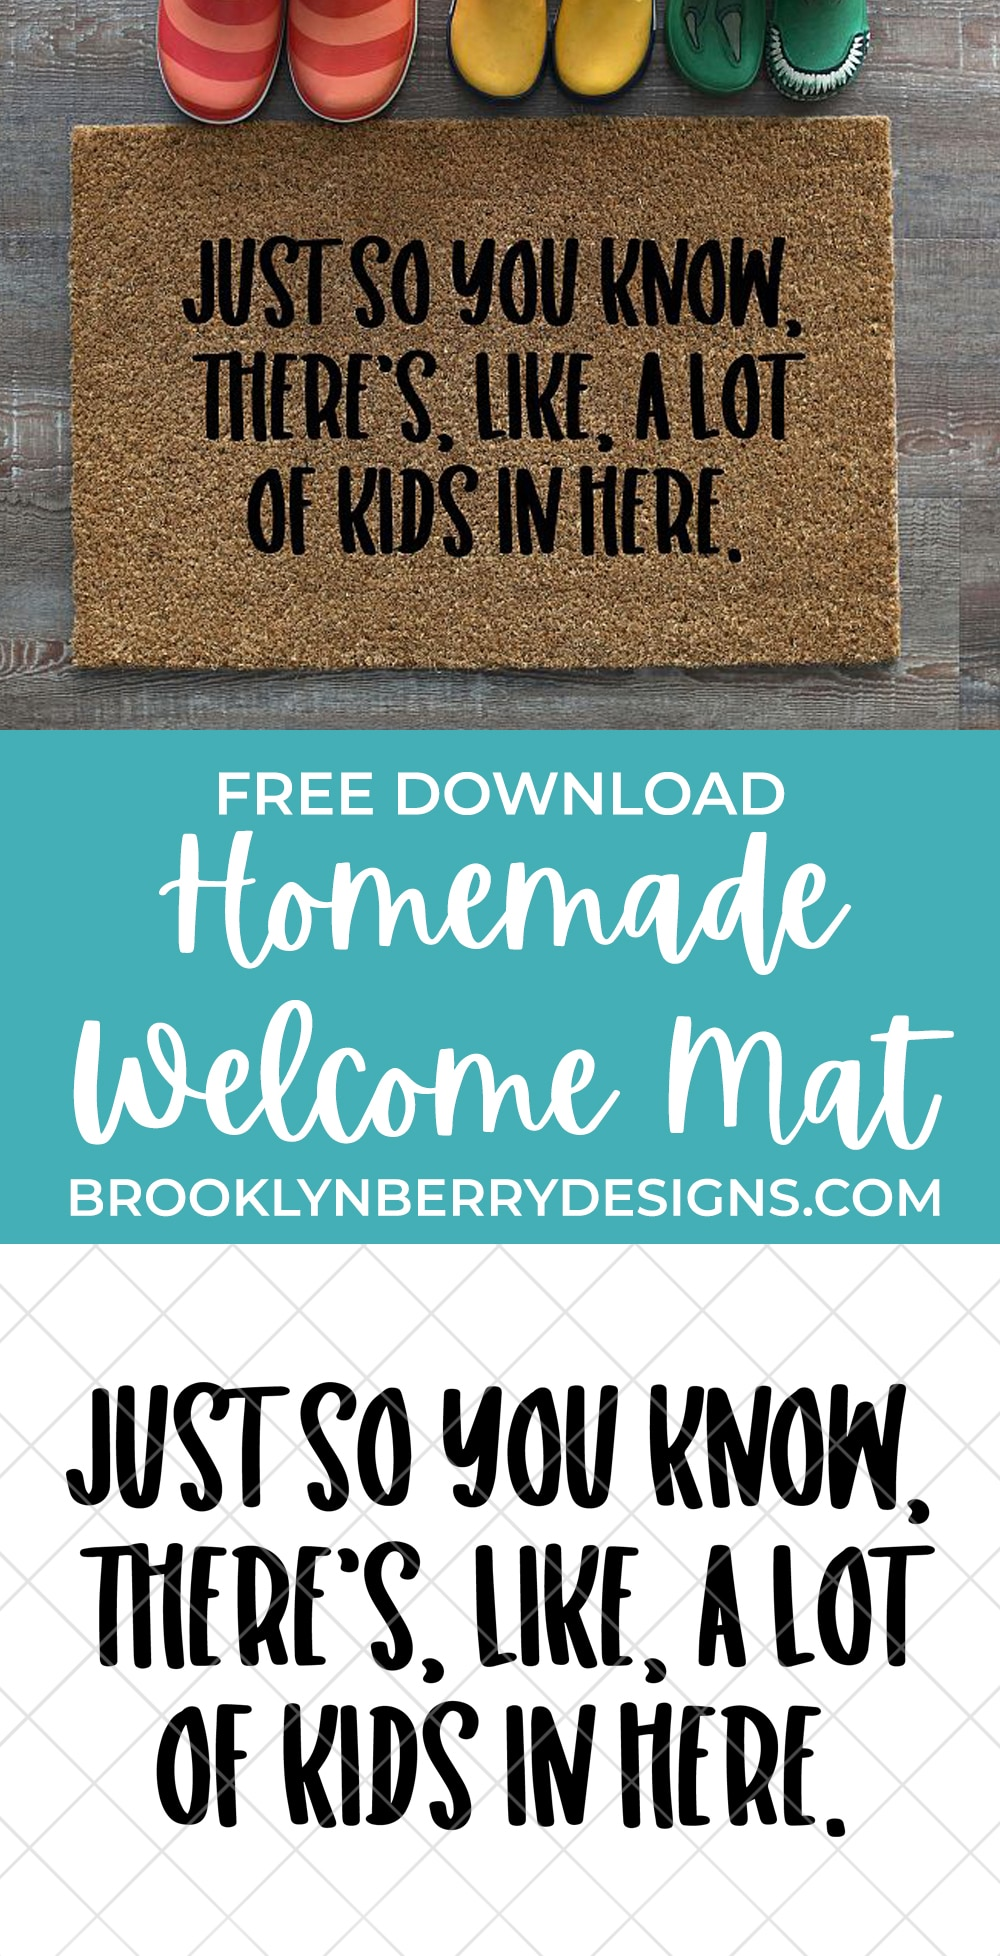 FREE FUNNY DOOR MAT SVG FILE via @brookeberry